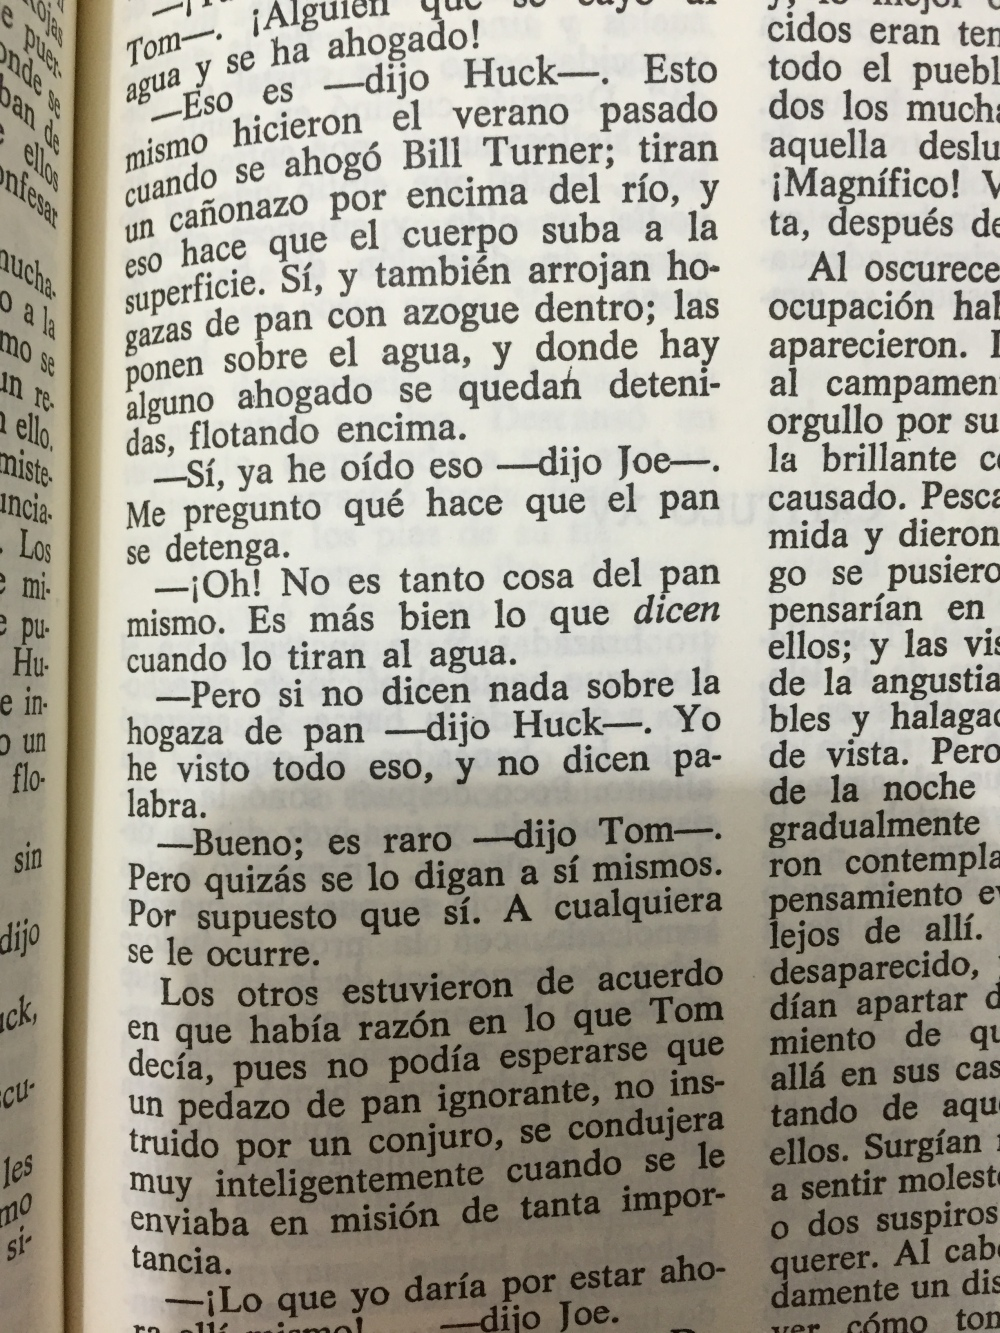 Fragmento del libro las aventuras de Tom Sawyer de Mark Twain